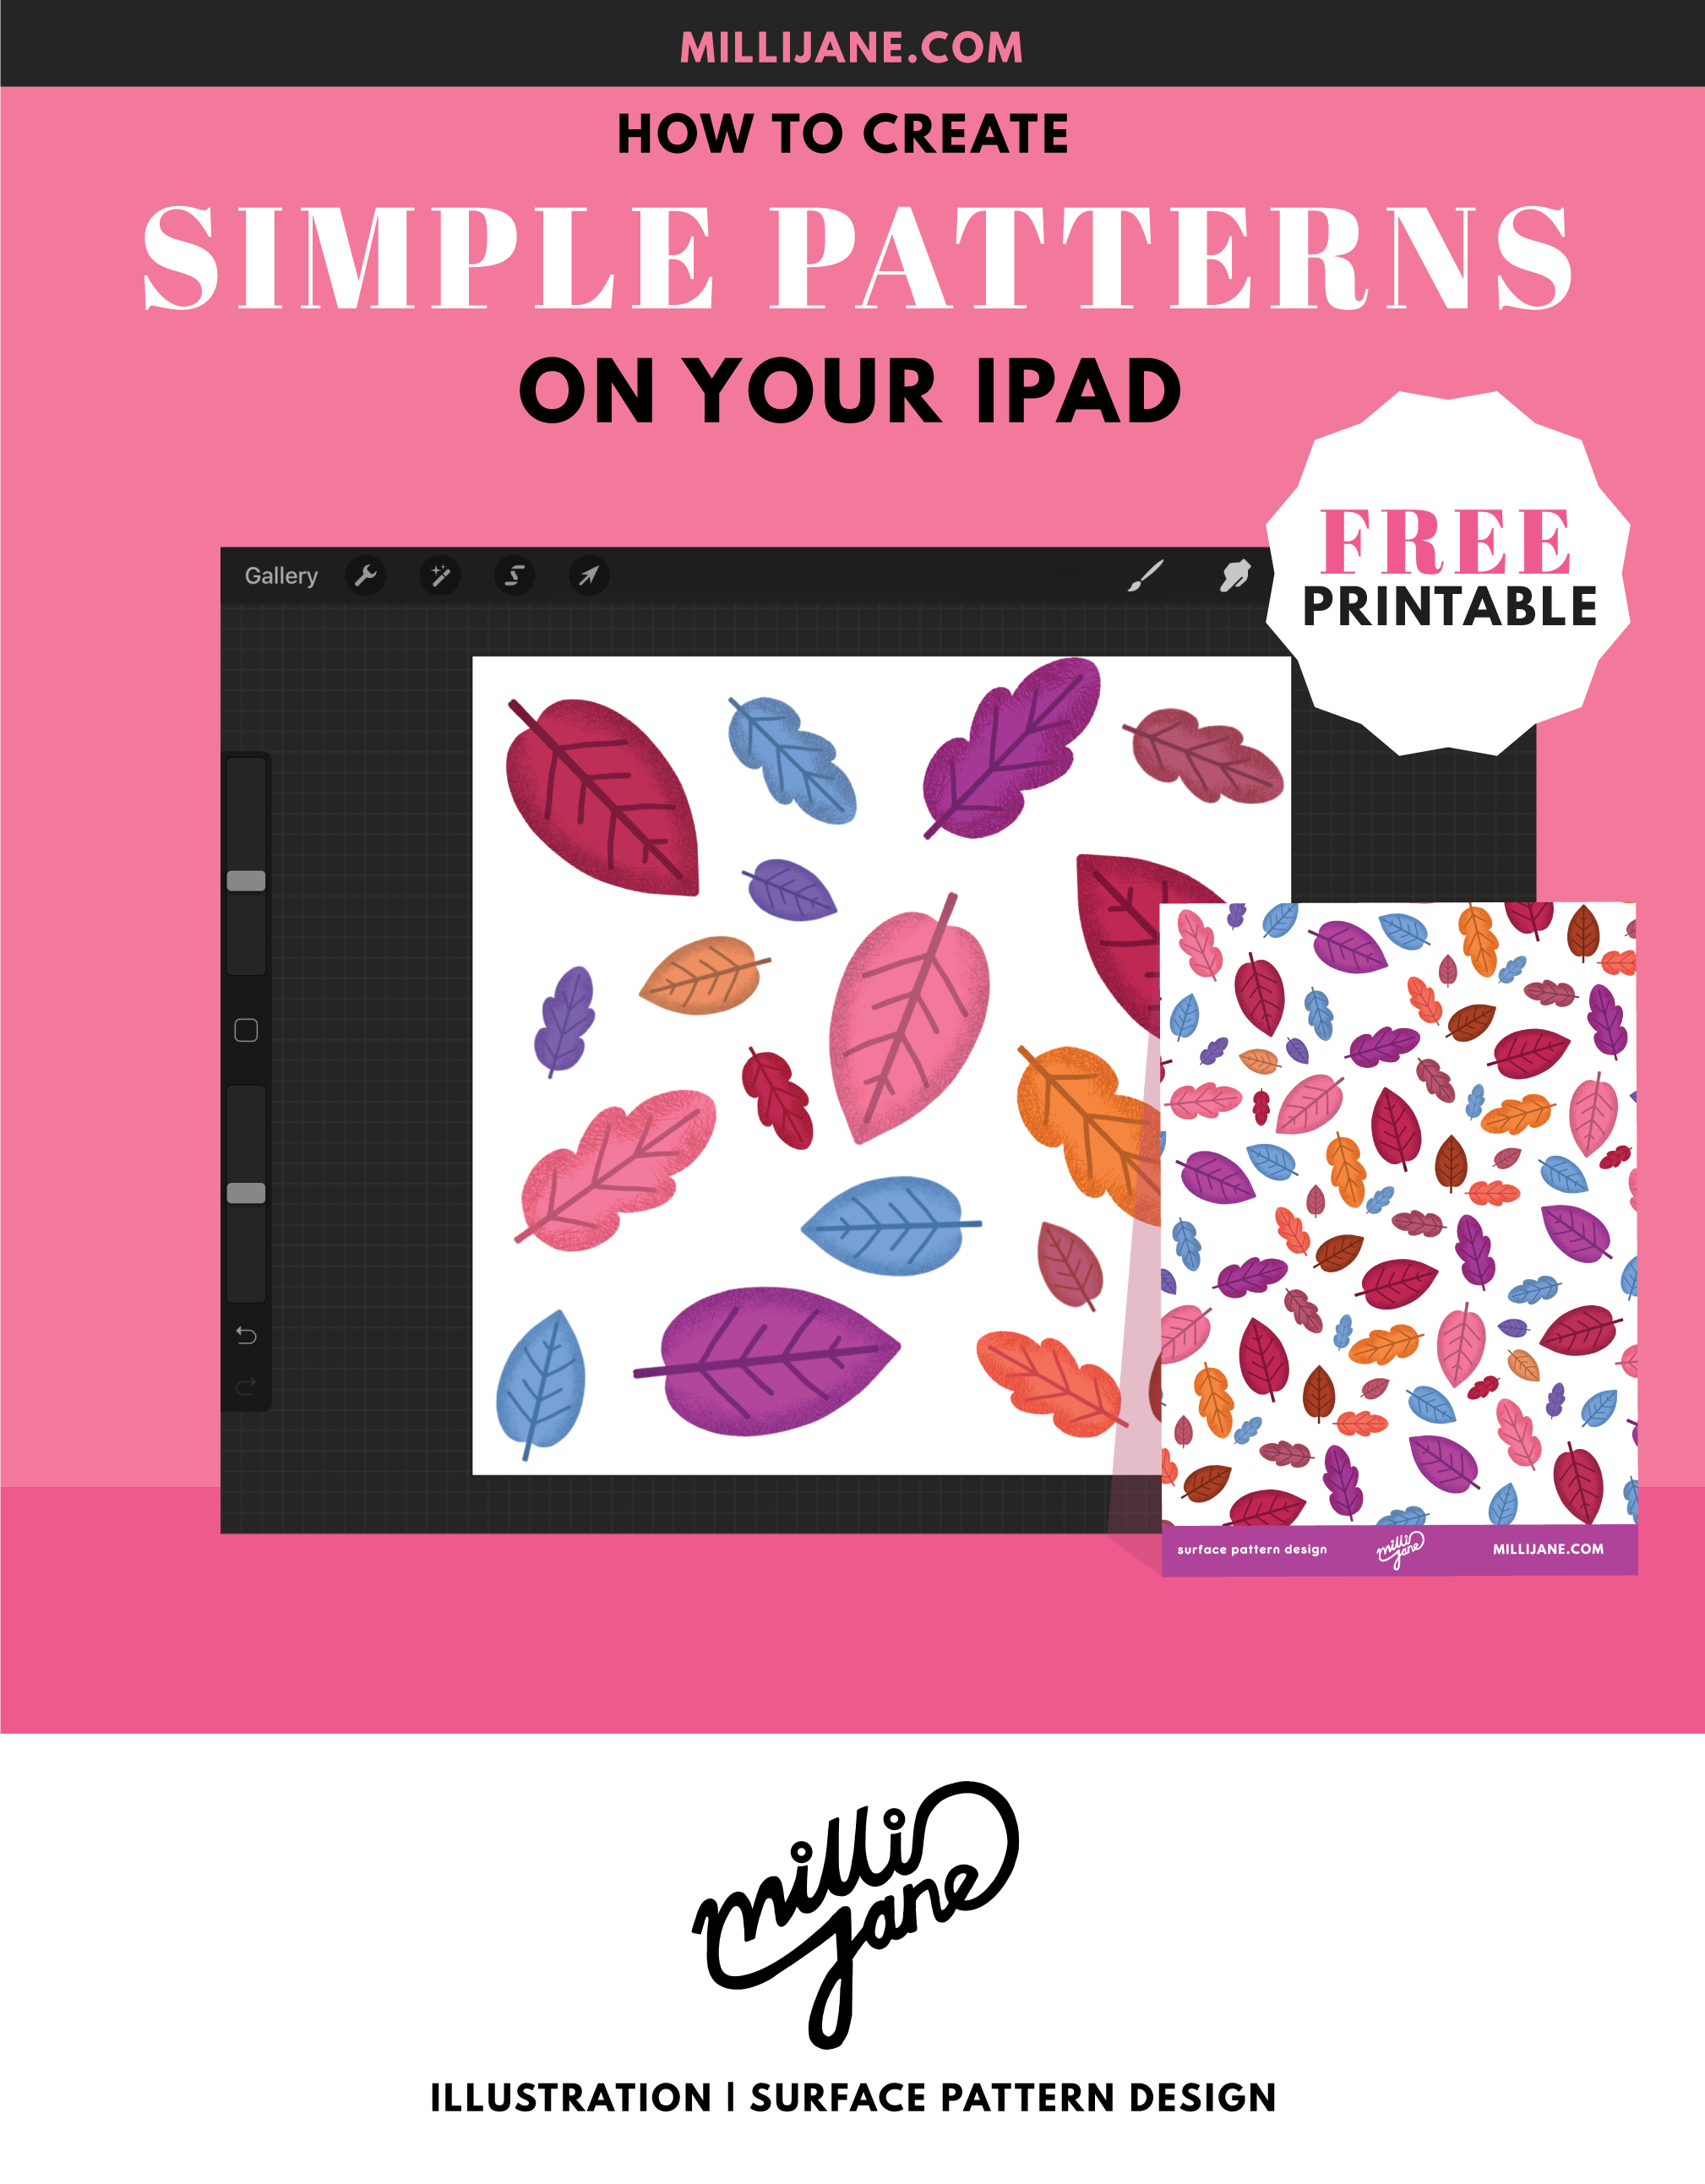 how to create simple patterns on your iPad